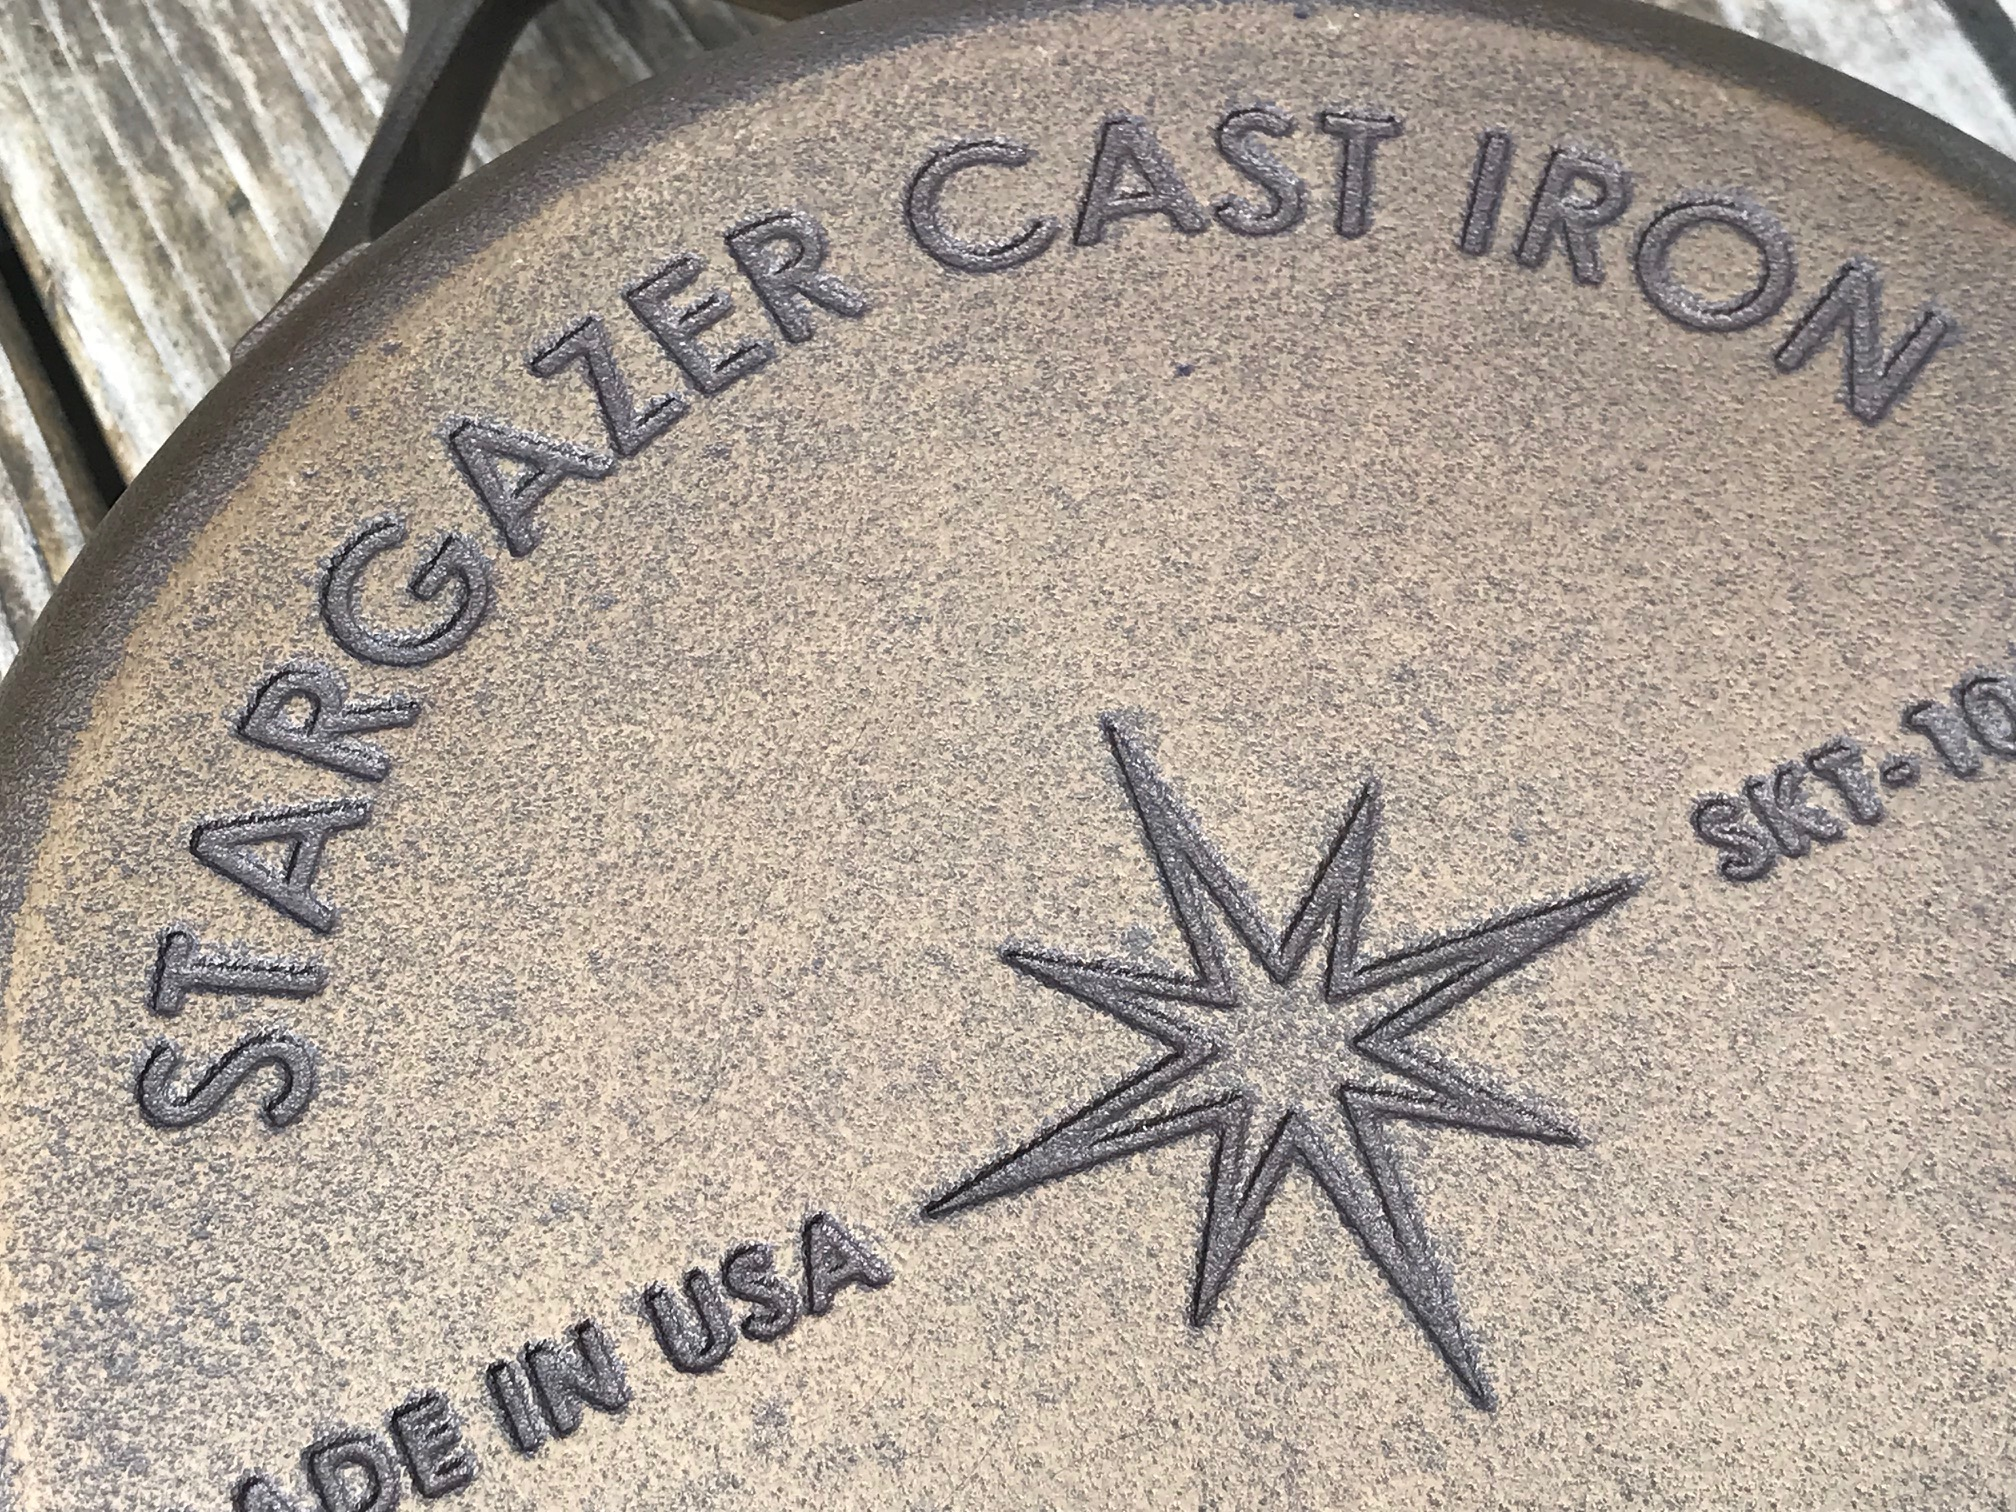 Stargazer Made In USA Pre-Seasoned Cast Iron: Lead Free [Cadmium Free, Mercury Free and Arsenic Free too!]